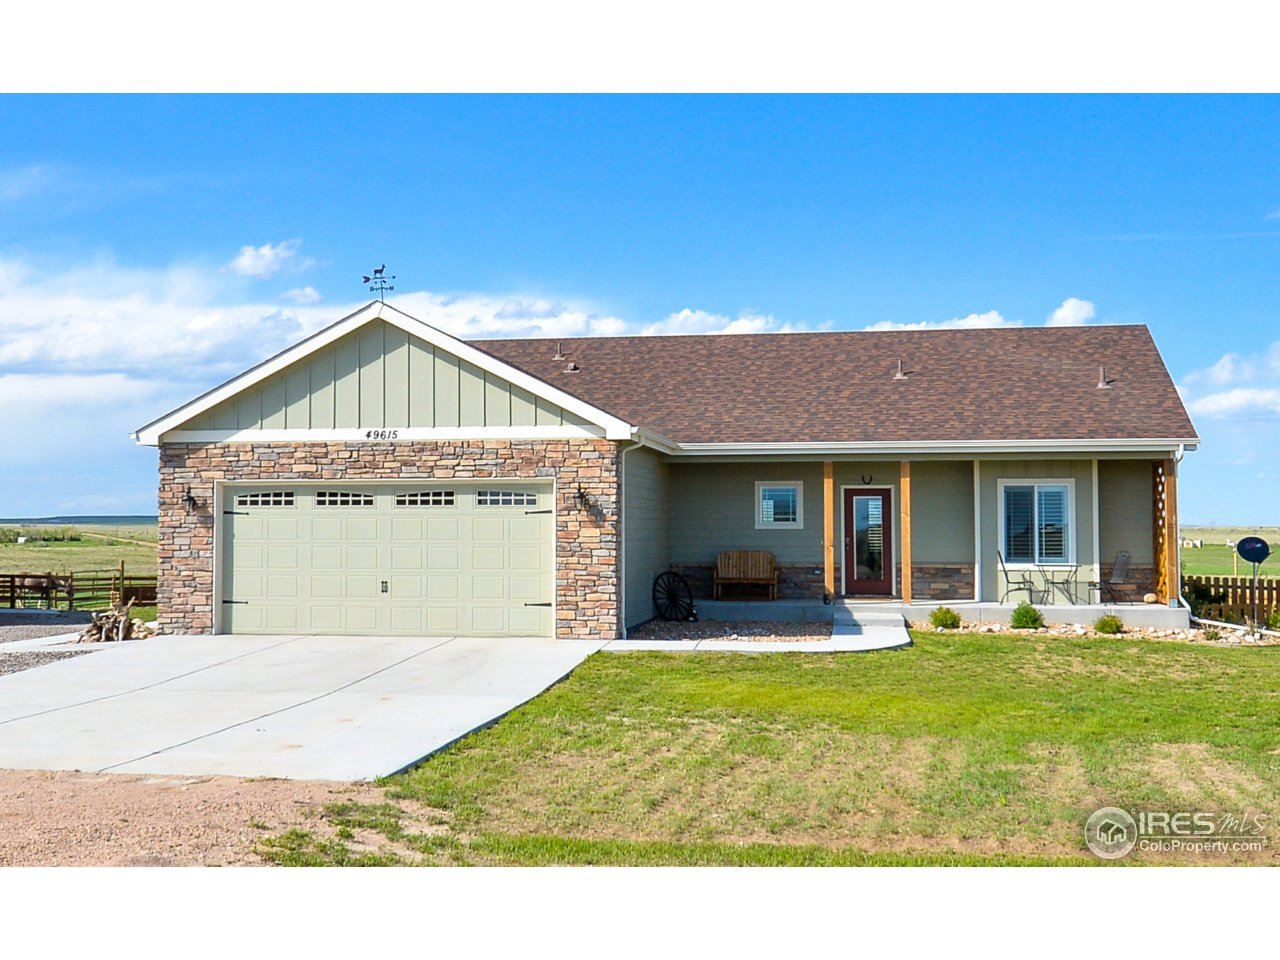 49615 Antelope Ln, Wellington, CO 80549